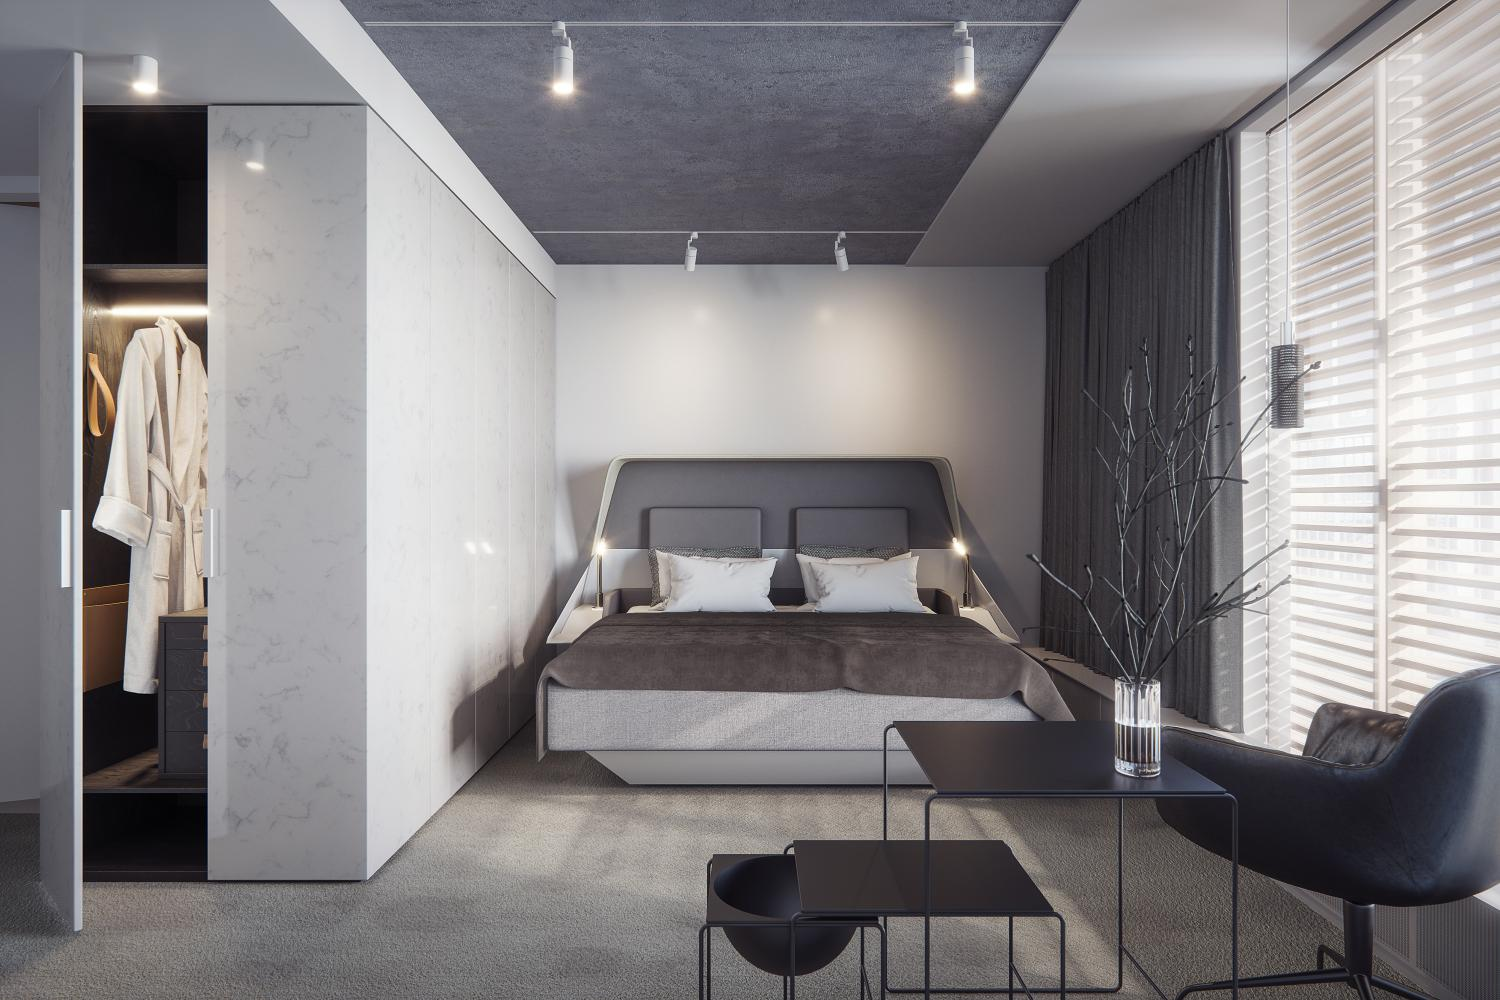 The global travel industry, notably the hotel and hospitality sector, has long struggled withsustainability. A Danish company says its coating technology could help reduce hotels' consumption of water and cleaners.